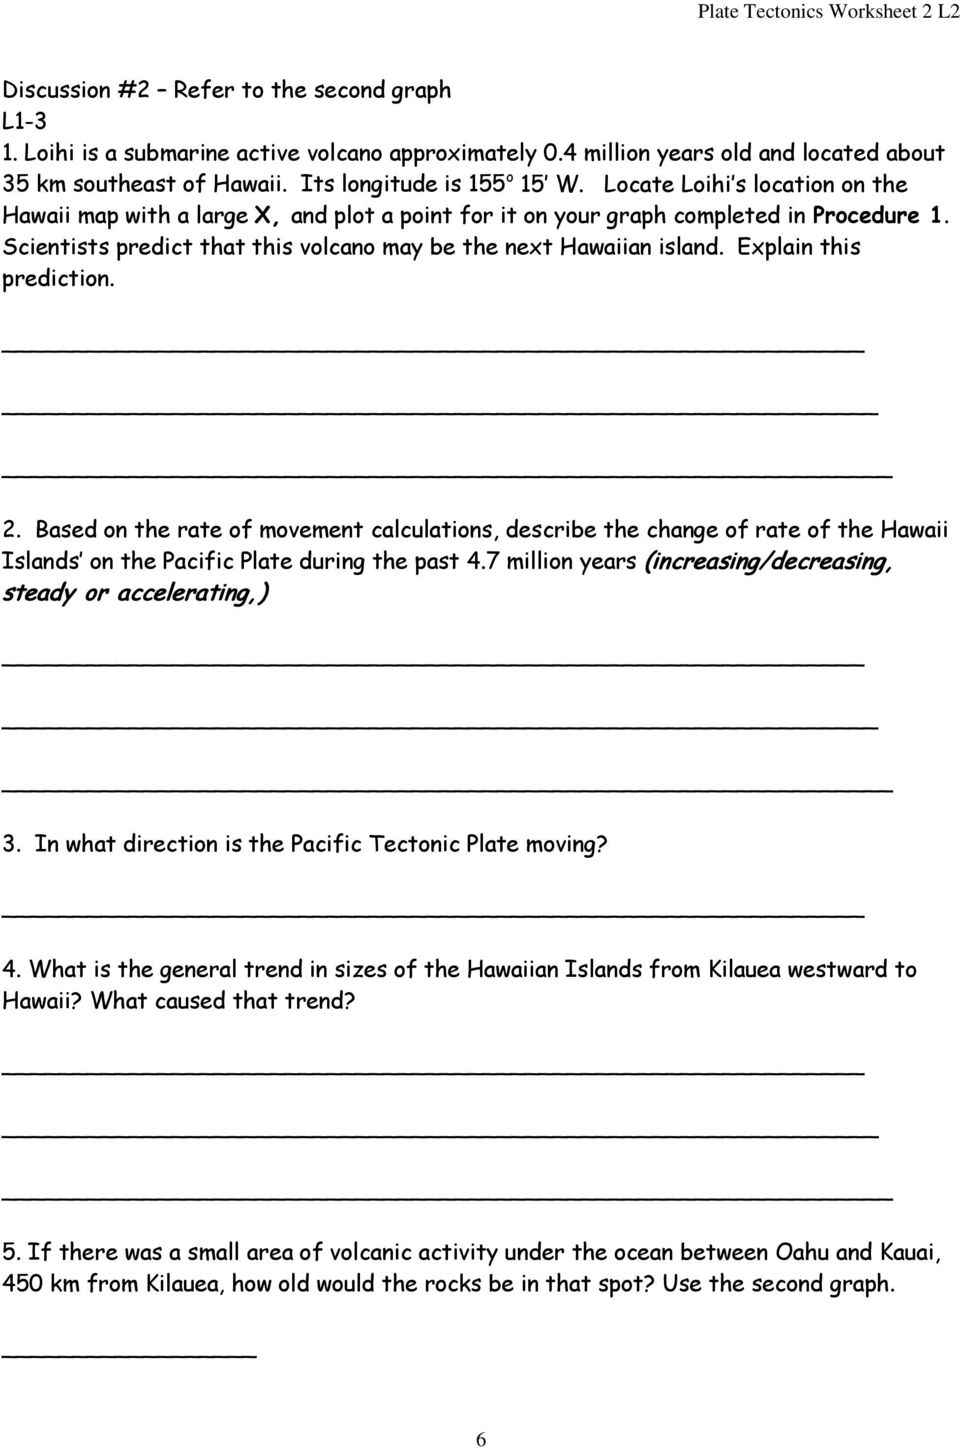 worksheet Theory Of Plate Tectonics Worksheet misp plate tectonics worksheet 2 l2 pdf explain this prediction based on the rate of movement calculations describe the